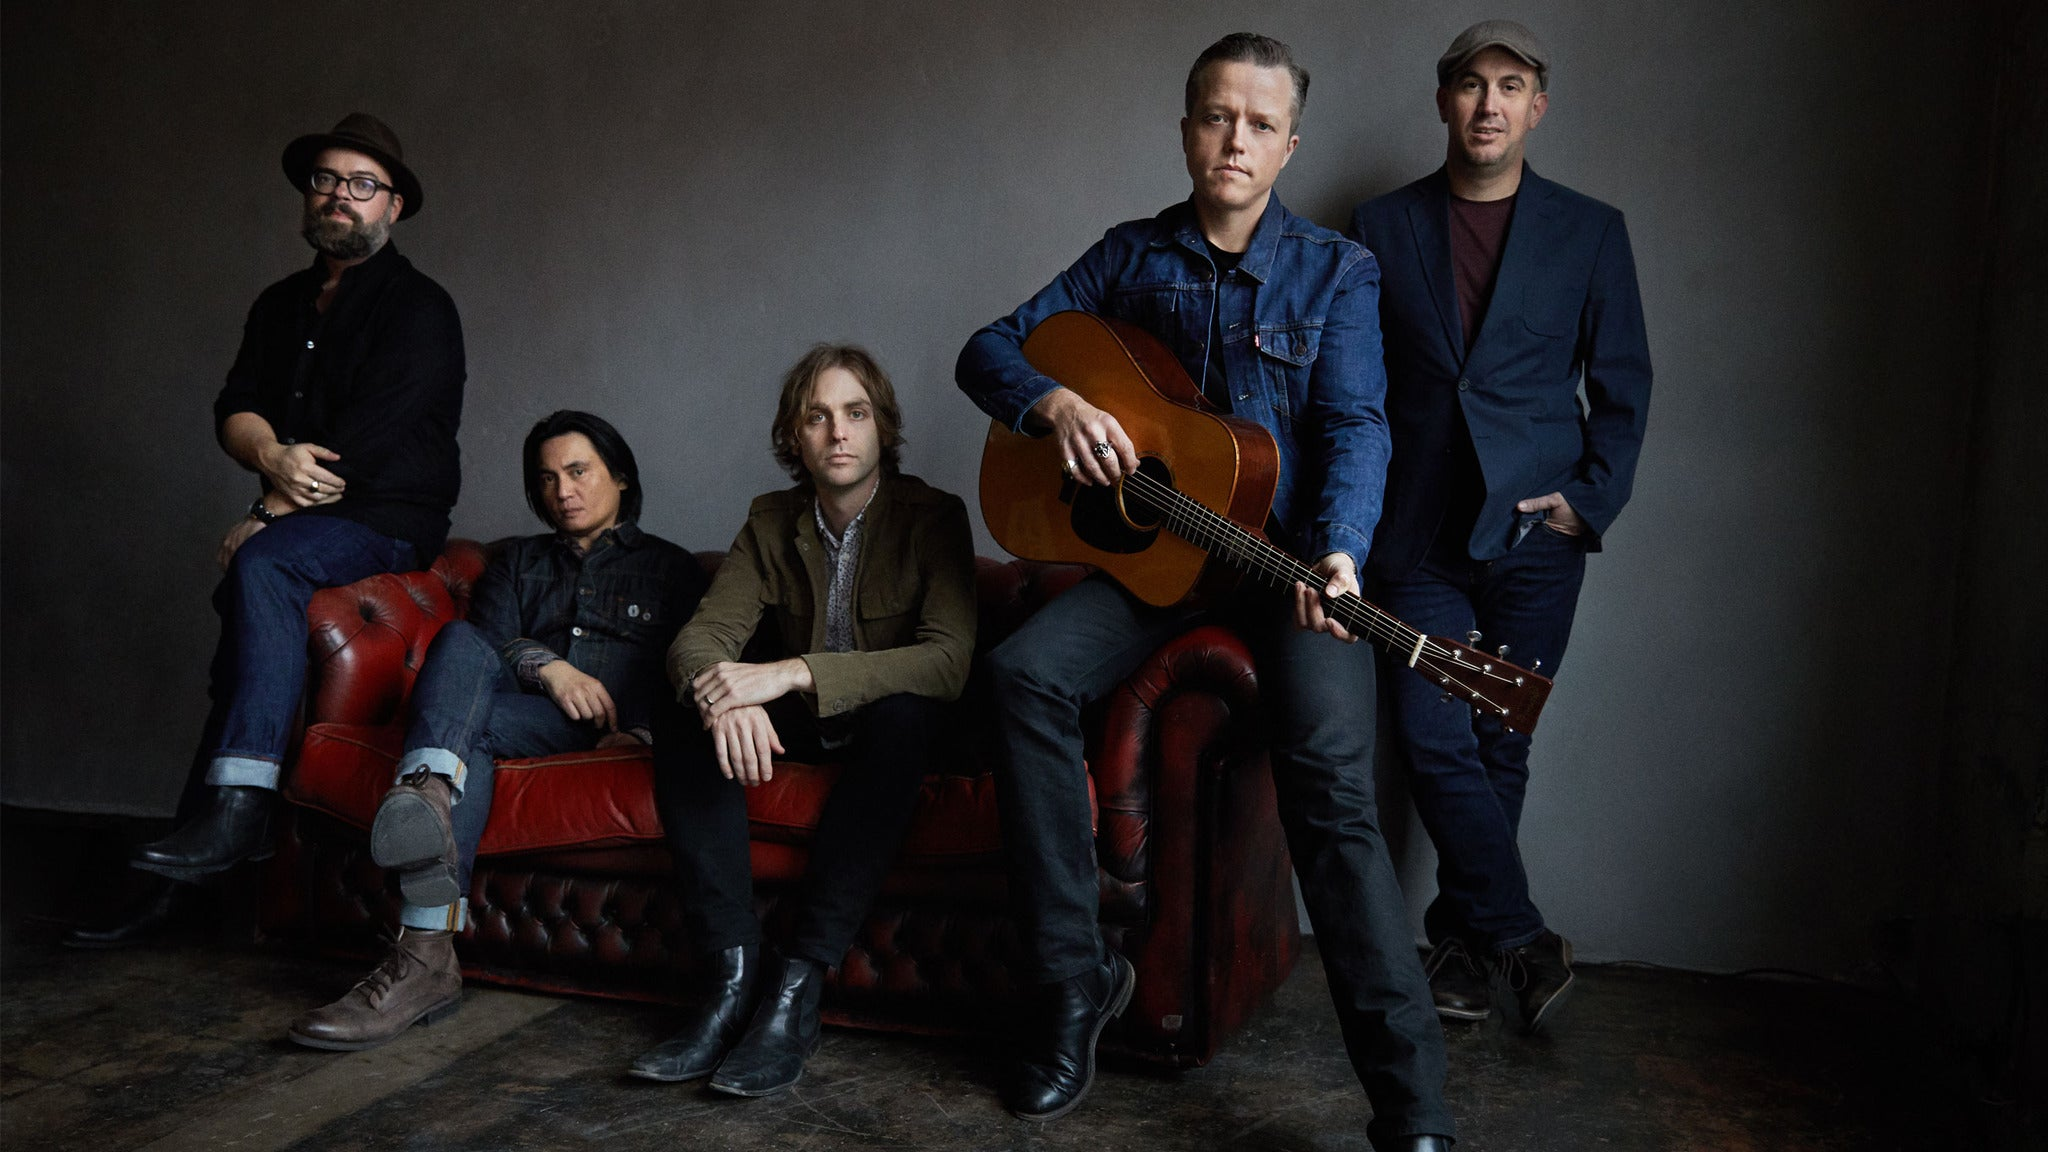 Jason Isbell & the 400 Unit : 2 Day Ticket